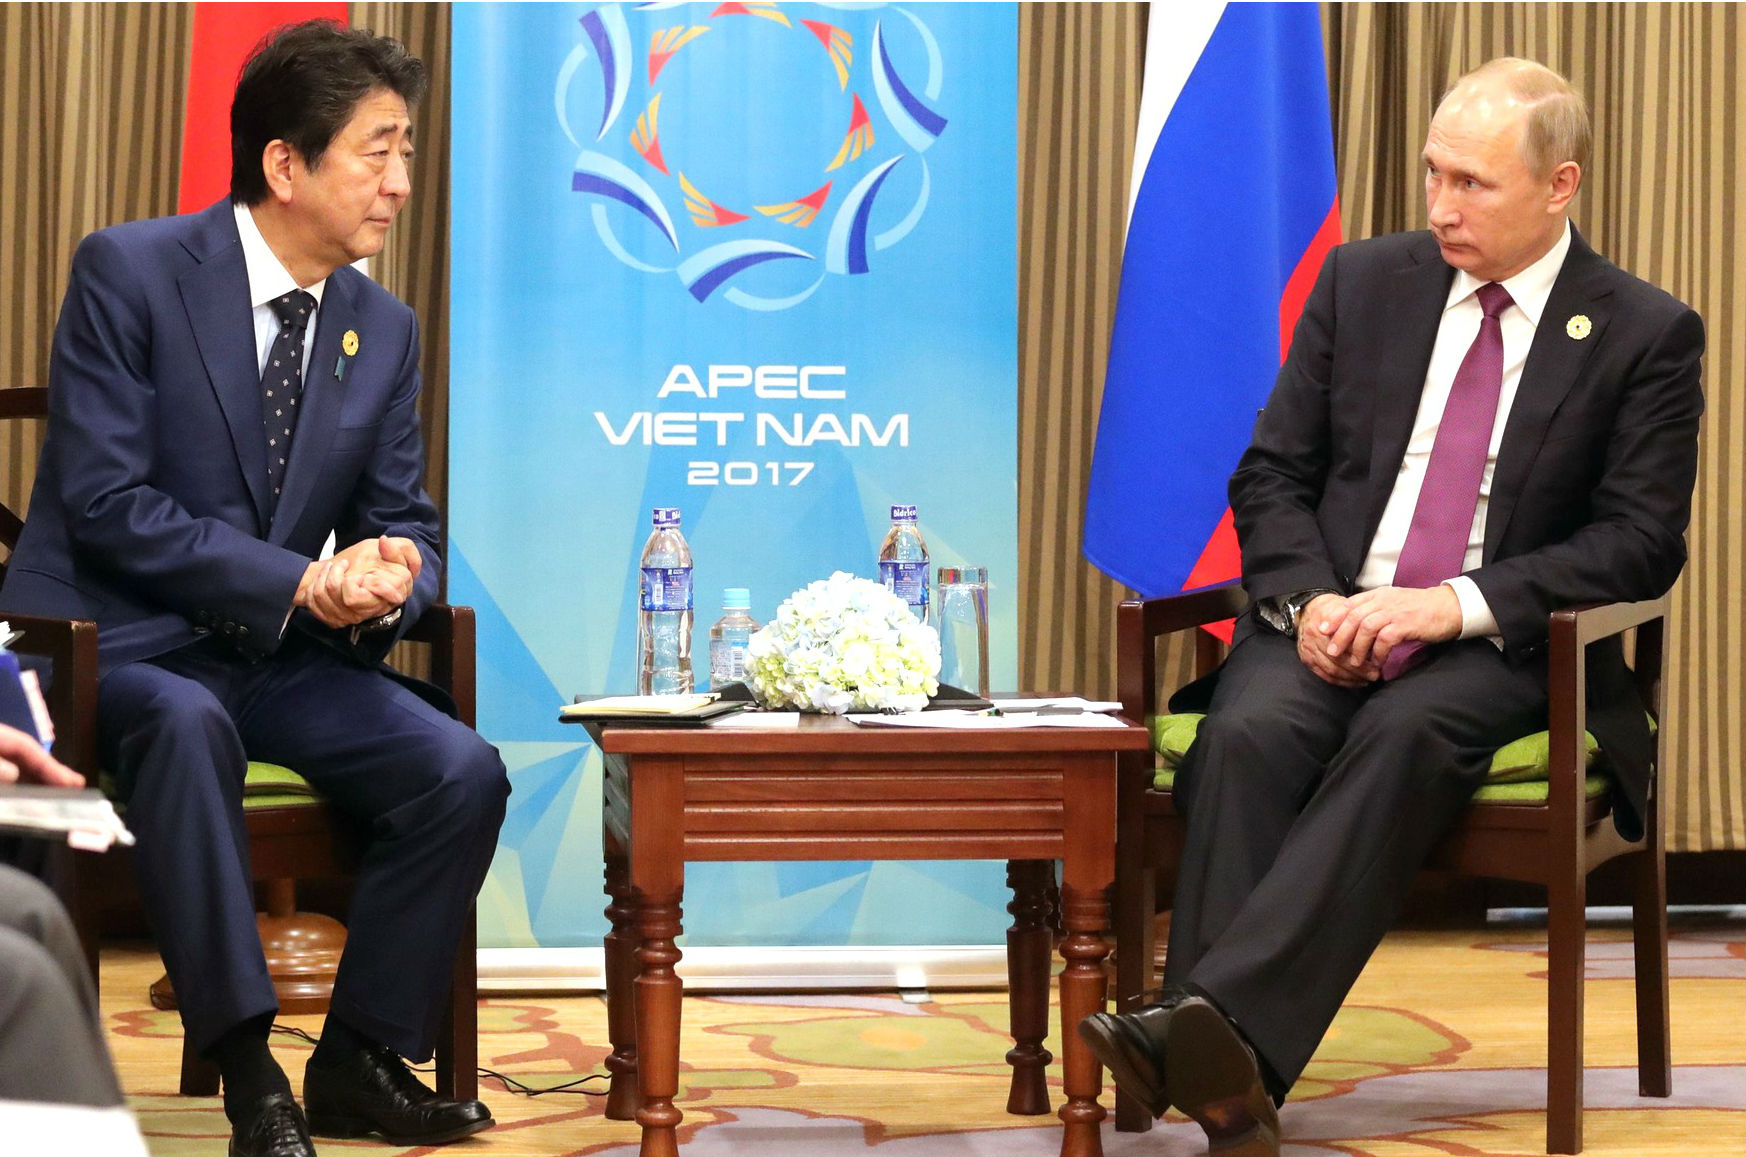 How to Make Sense of Japan's Delicate Balance Between Russia and Ukraine